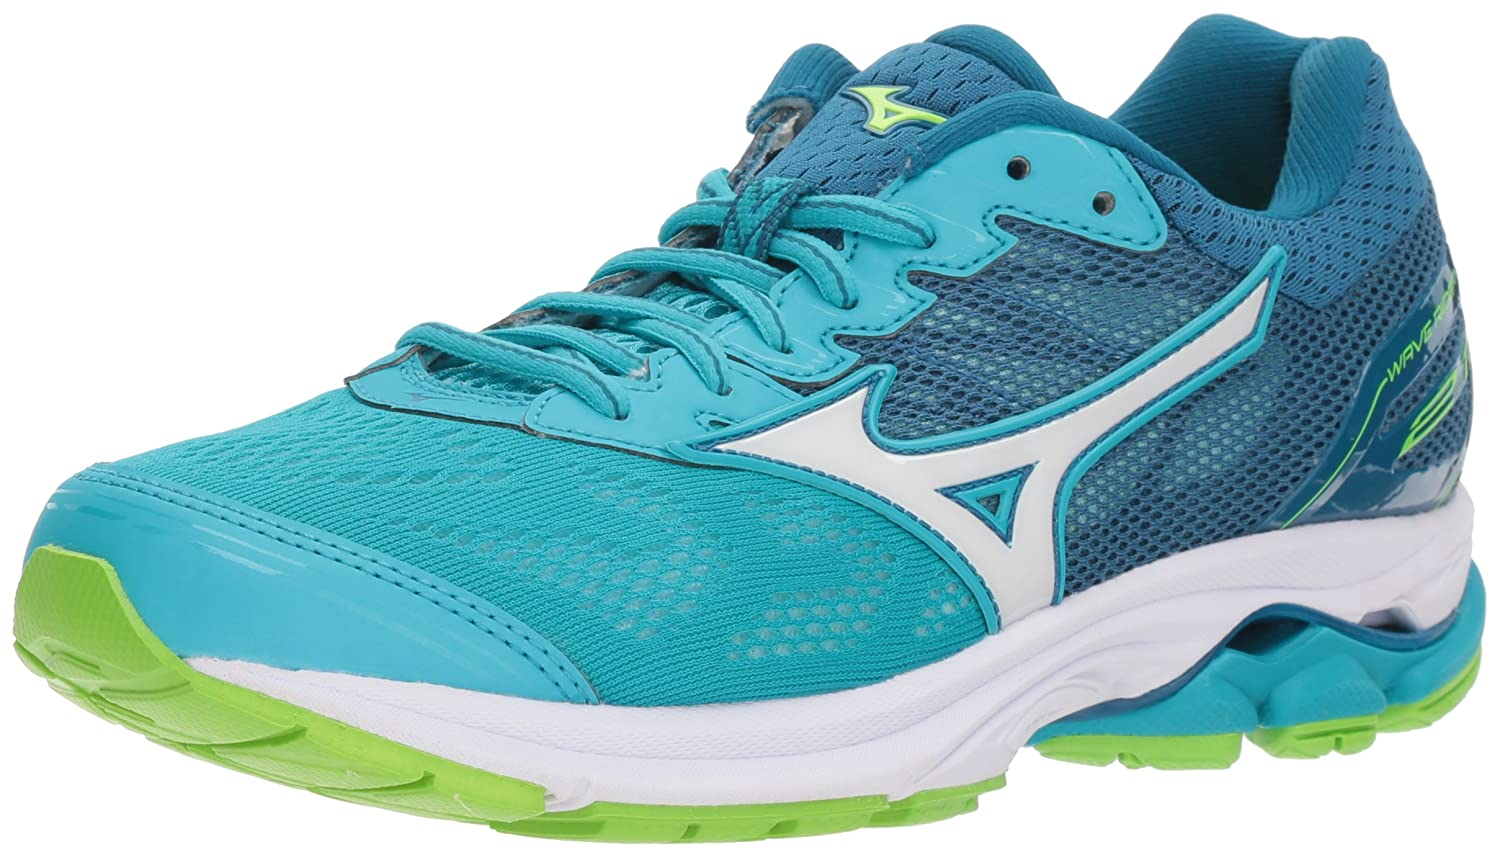 Mizuno Women's Wave Rider 21 Running Shoe B06WWHFBWH 10 B(M) US|Peacock Blue/White